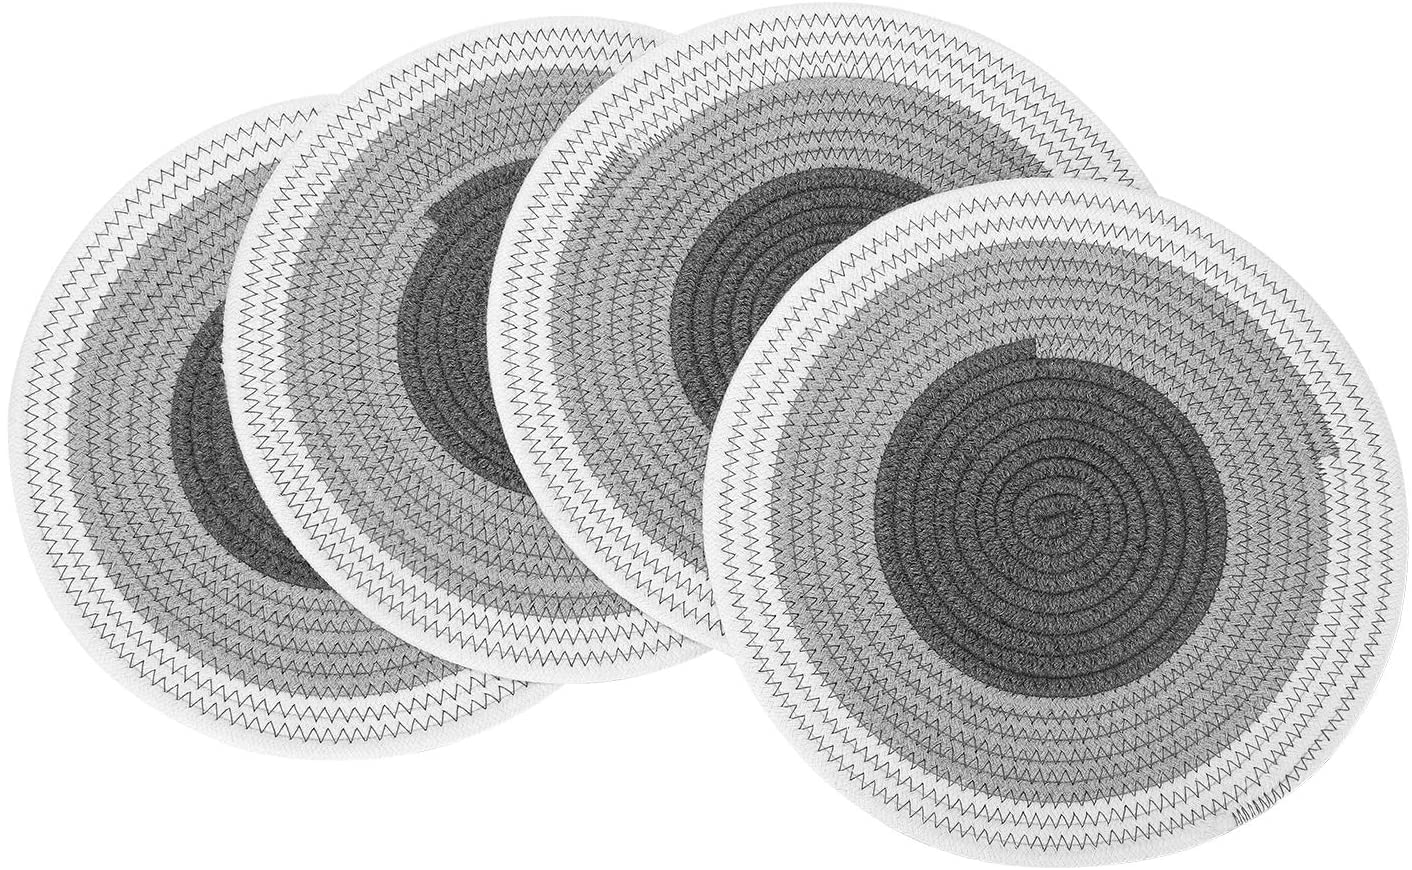 FOYO 12 Inch Round Placemats Heat-Resistant, Non-Slip Washable Table Mats for Dinner Table, Cotton Braided Placemats, Set of 4